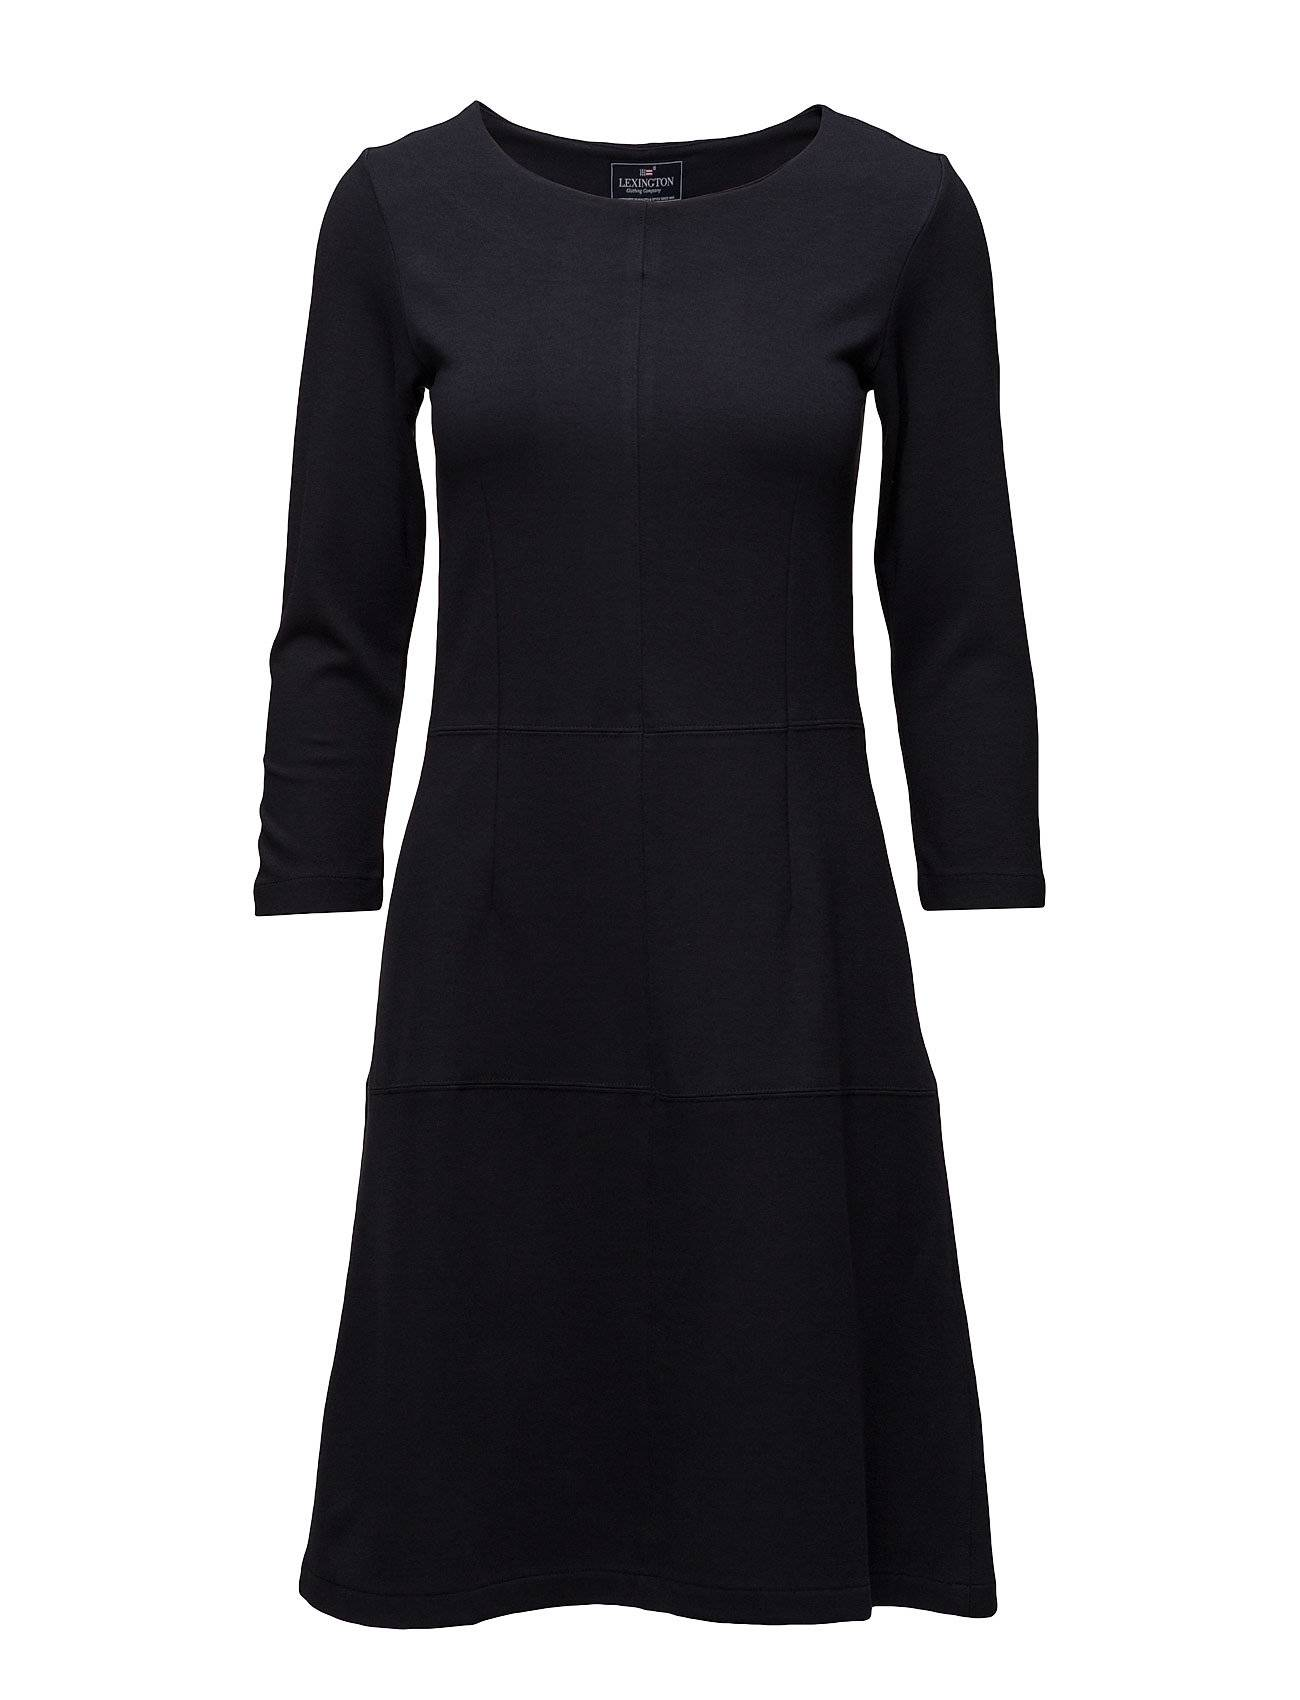 Lexington Clothing Michaela Jersey Dress